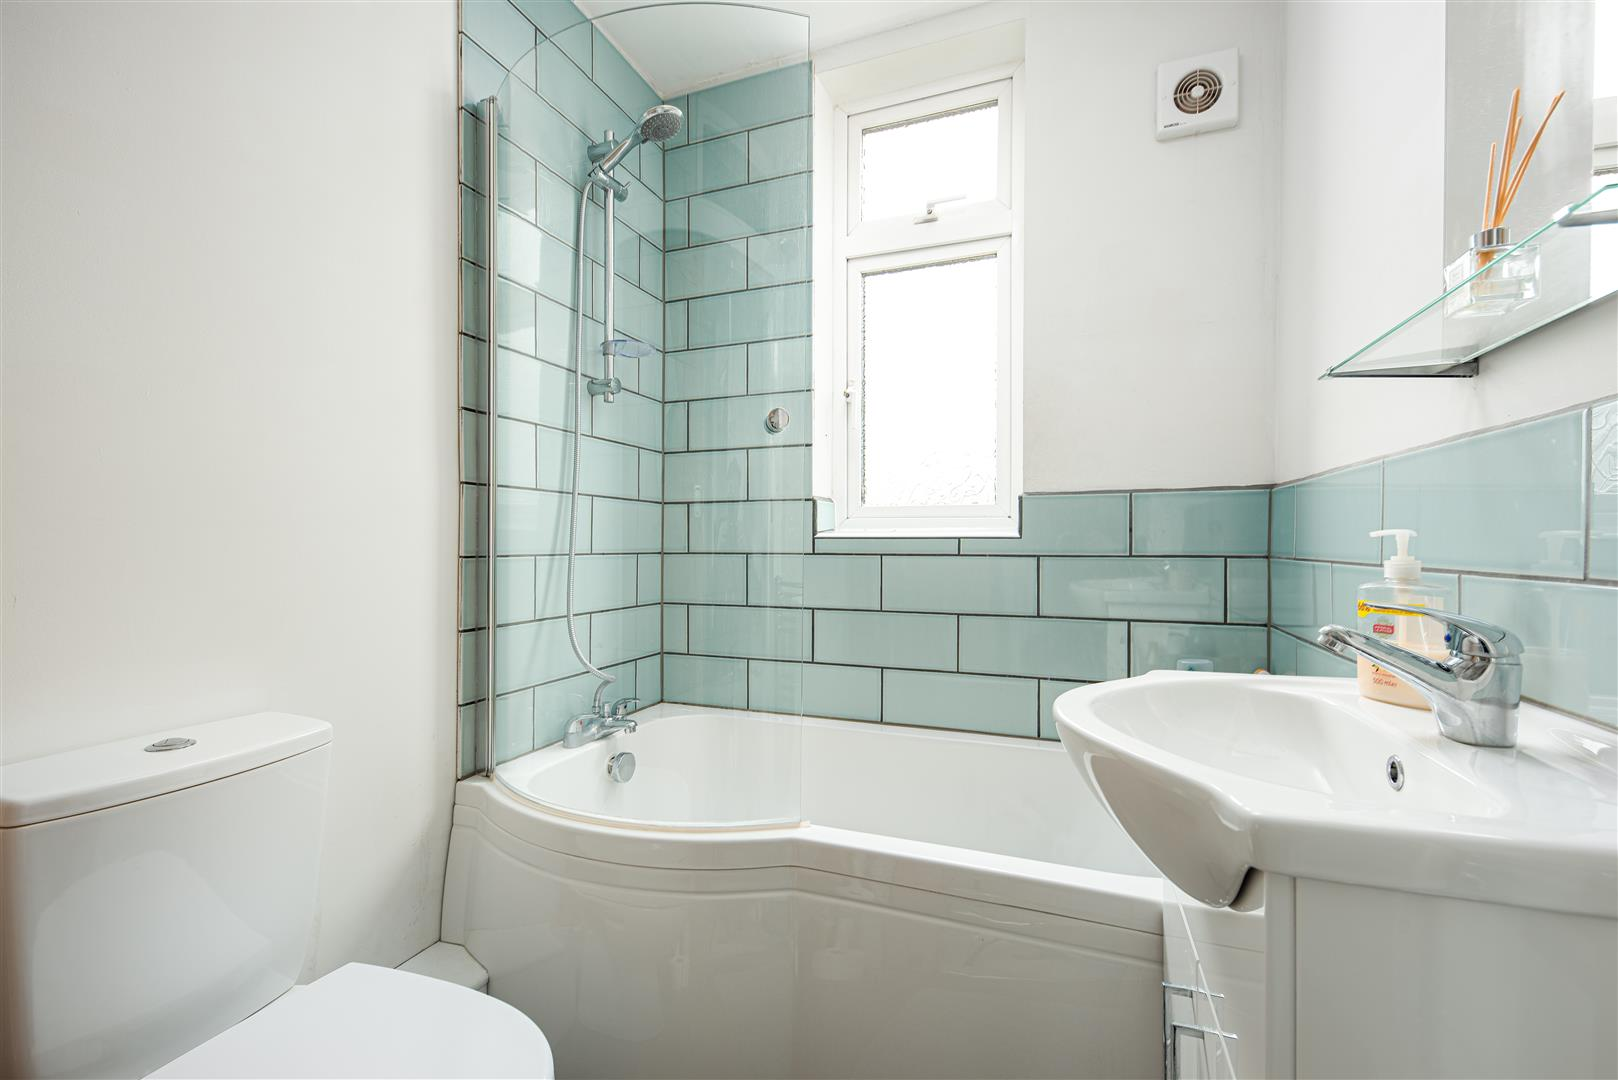 4 bed house to rent in Keys Avenue, Bristol  - Property Image 9